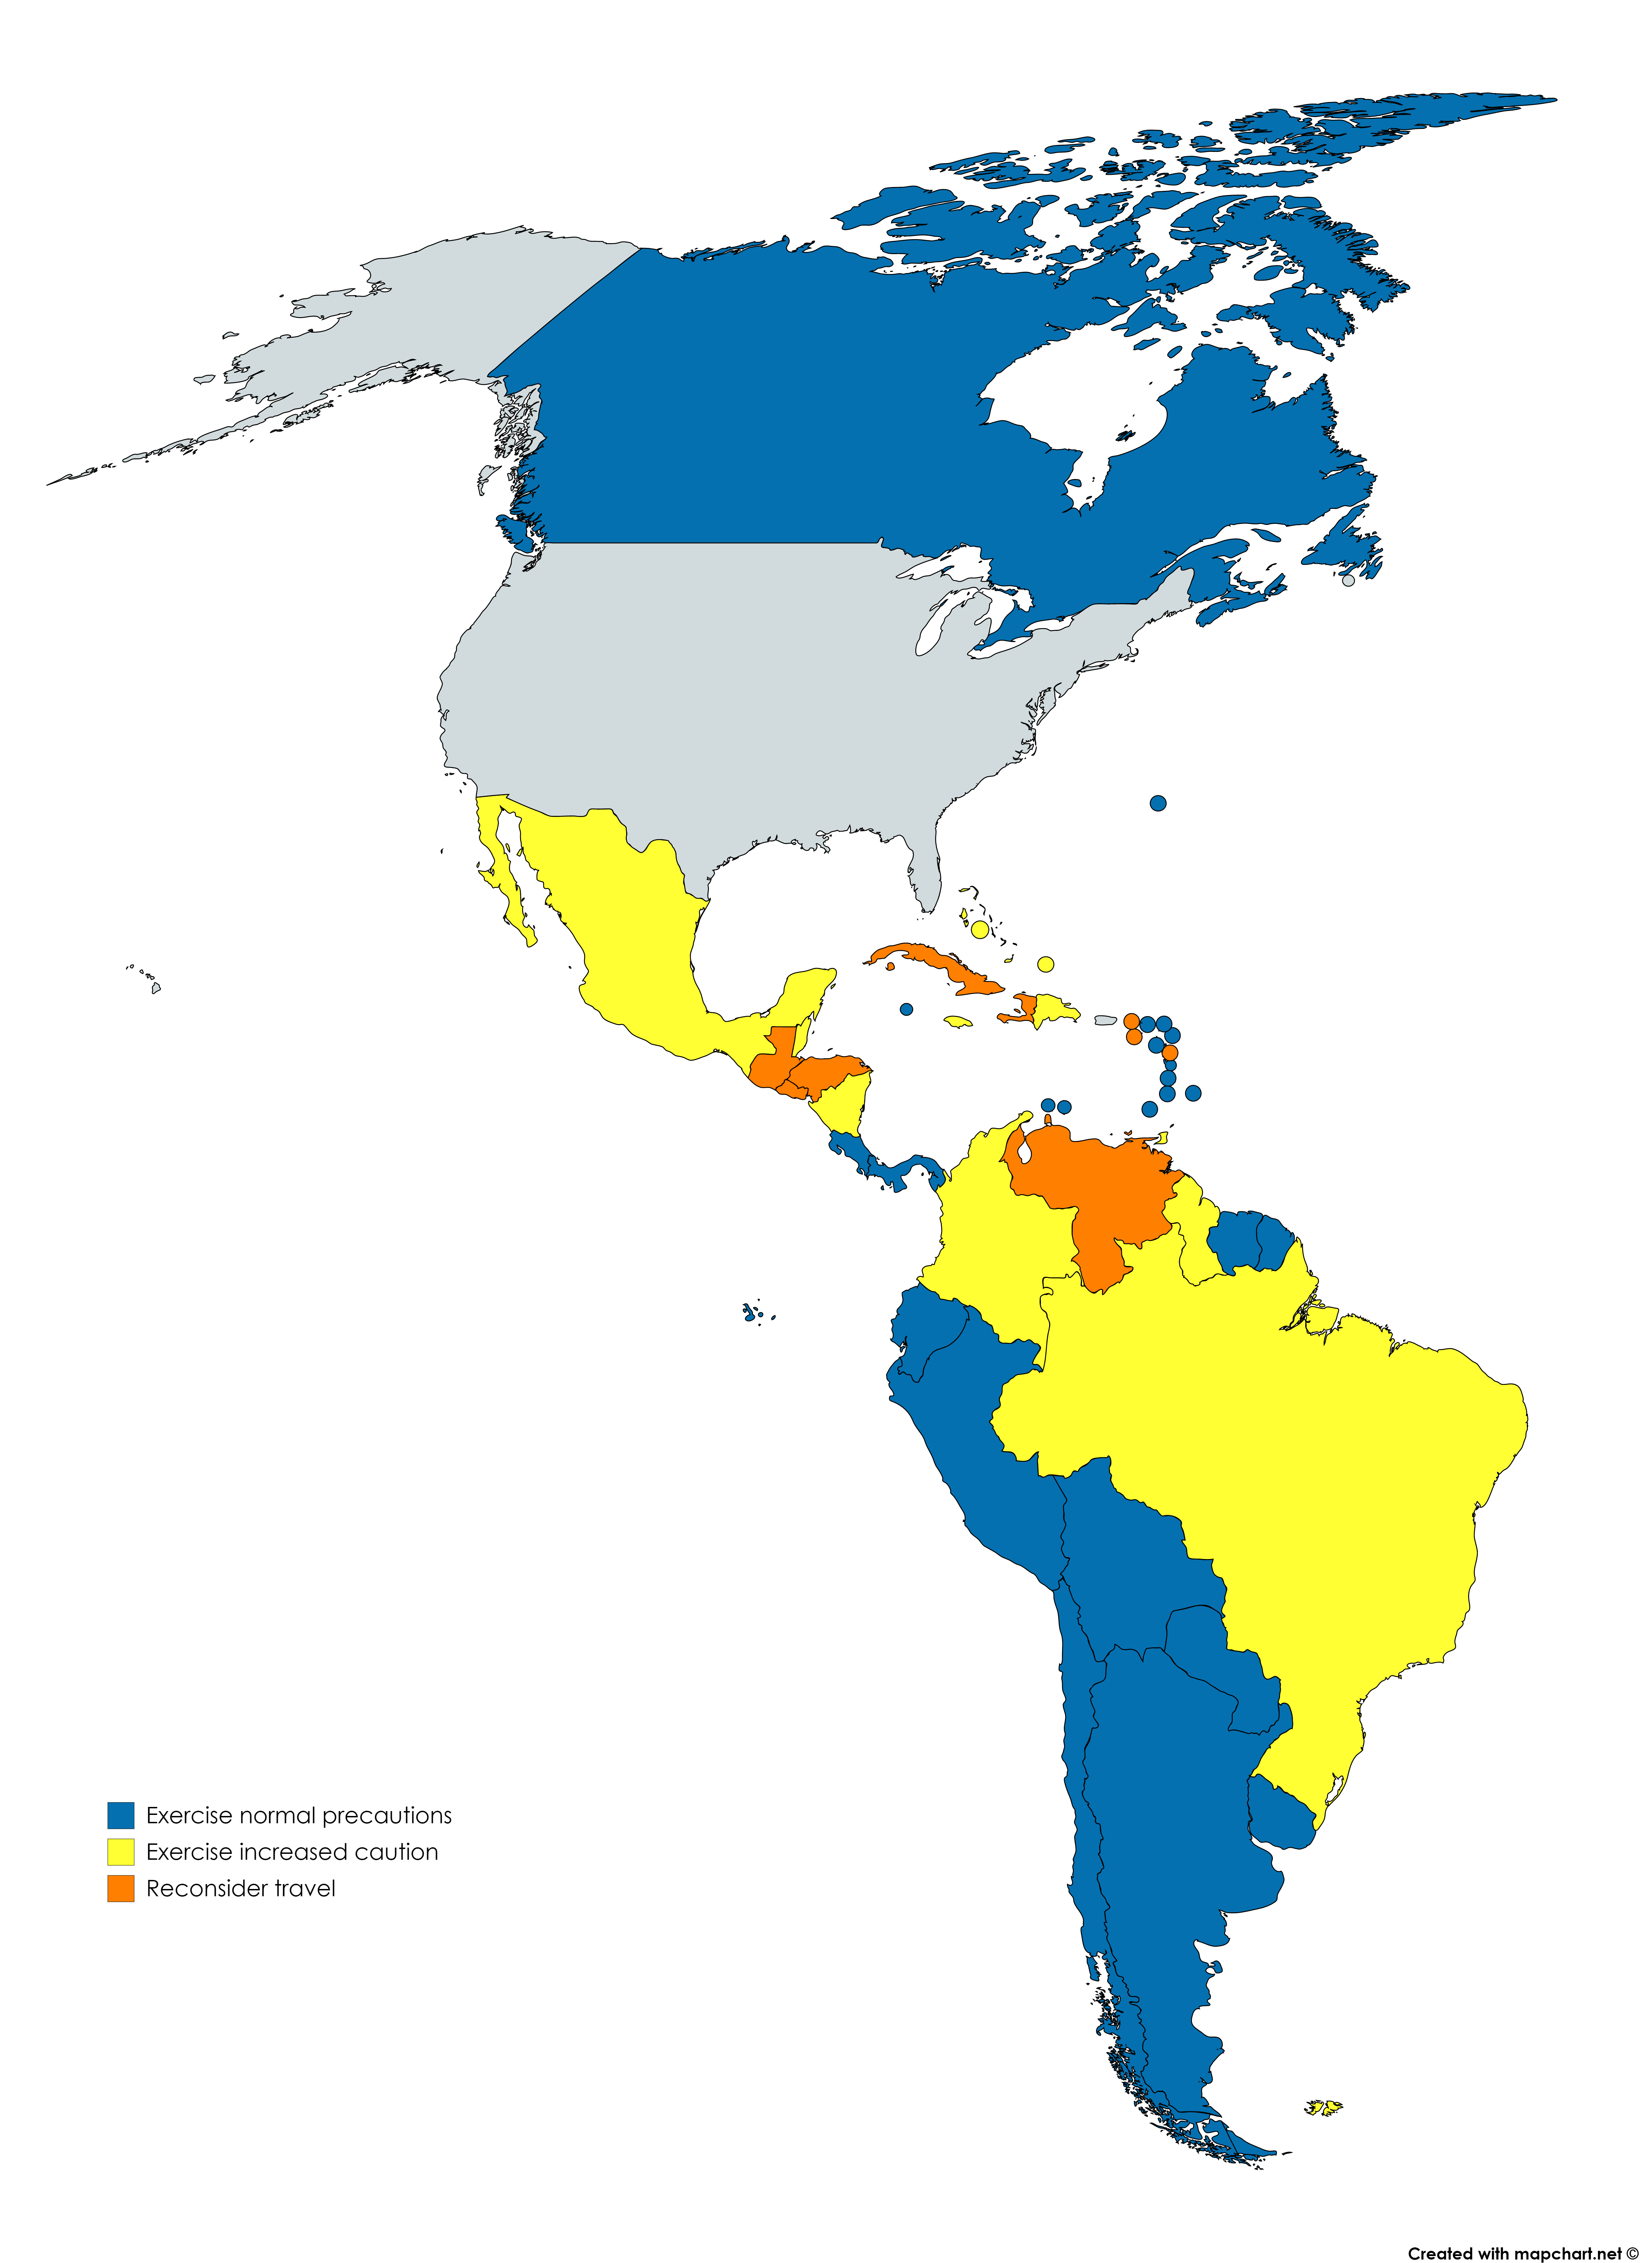 Us travel advisories for north and south america maps pinterest us travel advisories for north and south america gumiabroncs Images